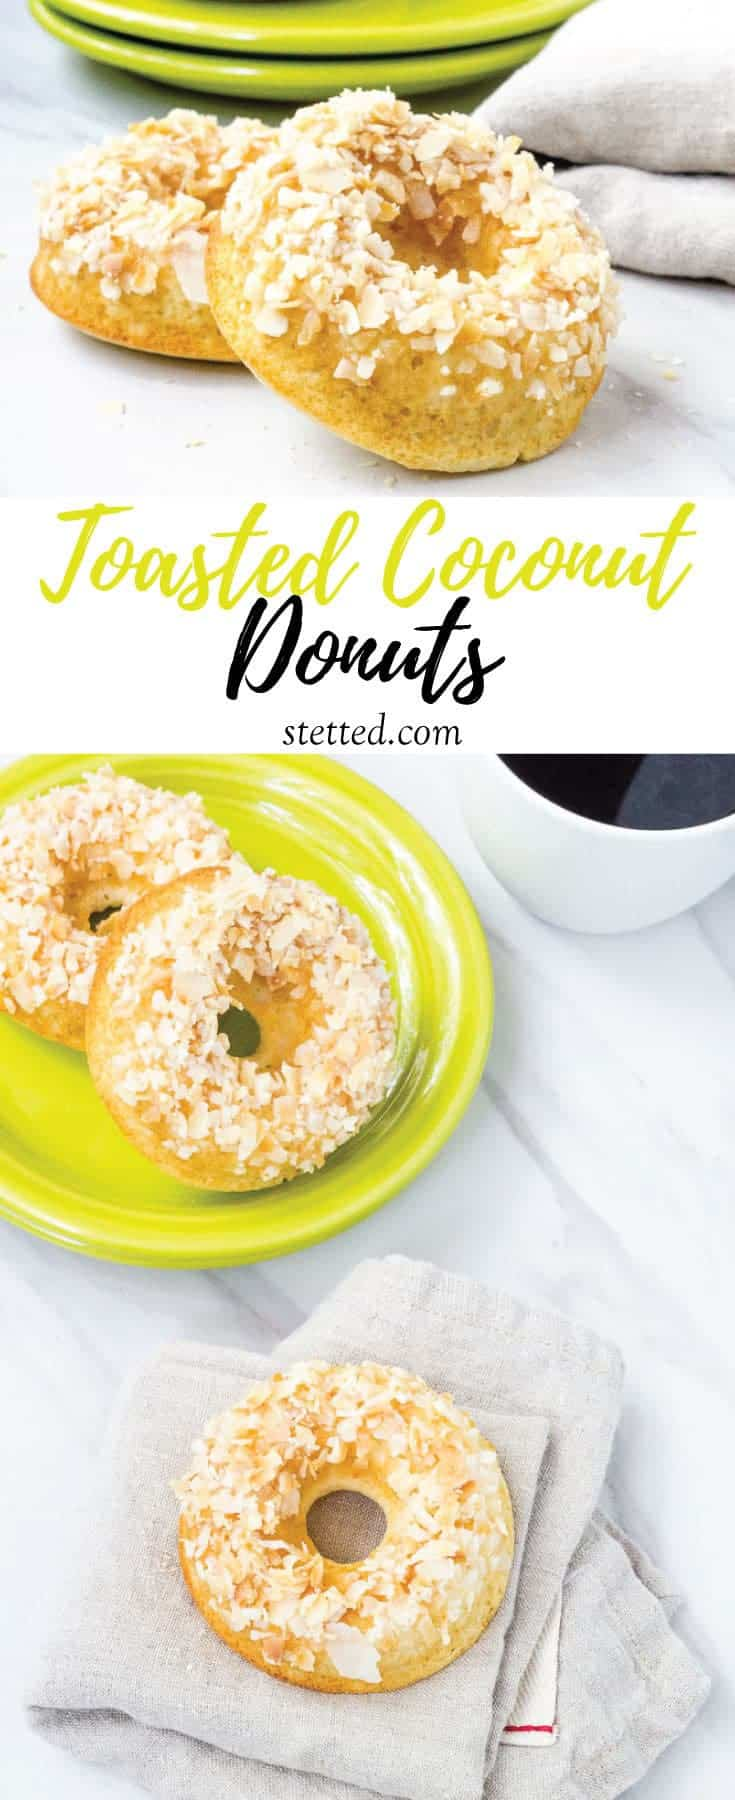 Toasted coconut donuts are full of tropical flavor. They're easy to make any day of the week to ease your donut craving.